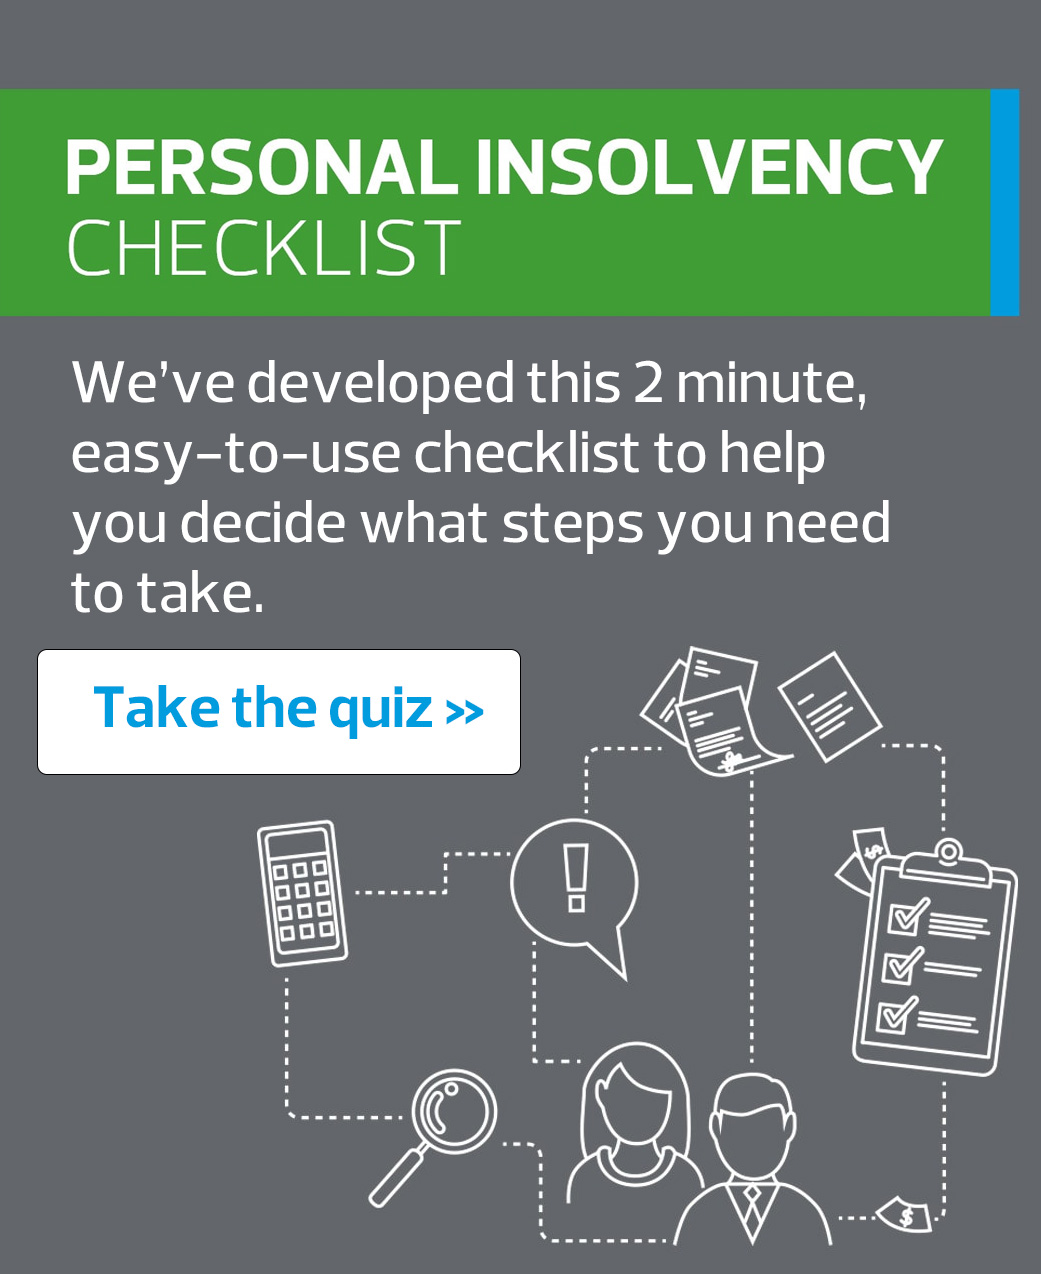 Contact a insolvency expert